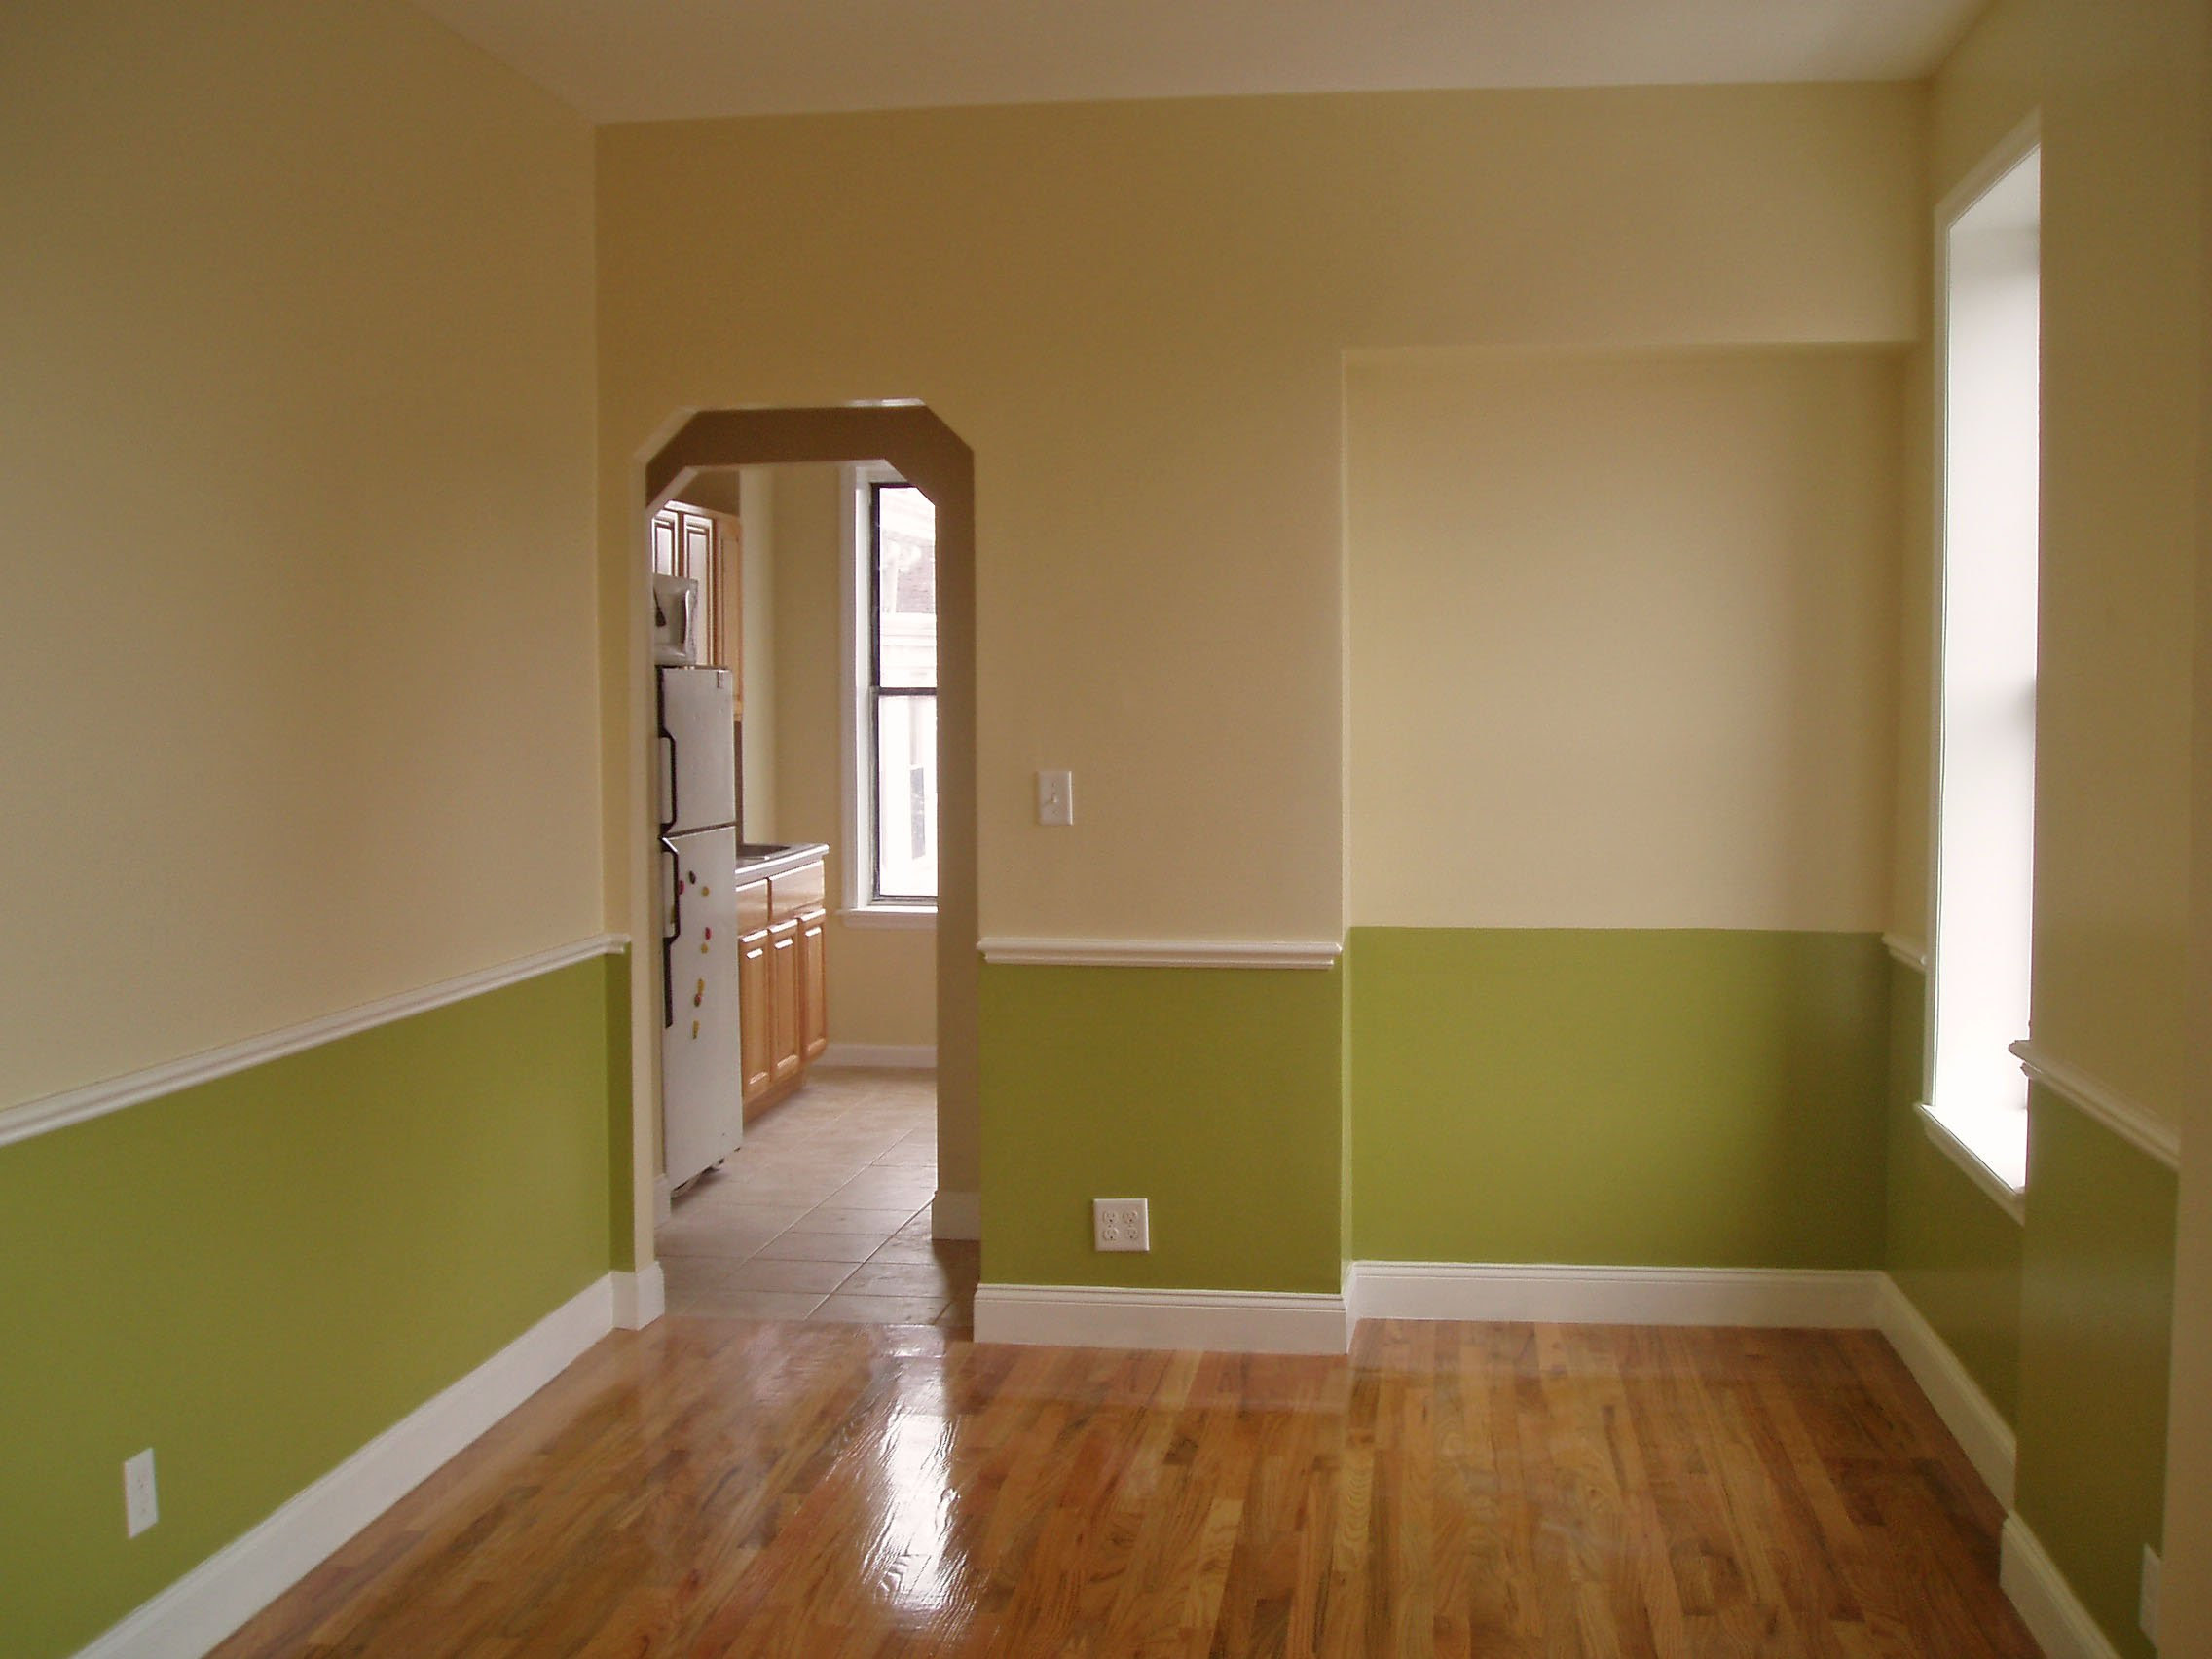 2 bedroom apartments for rent in chicago ciupa biksemad - One bedroom apartments in canarsie brooklyn ...